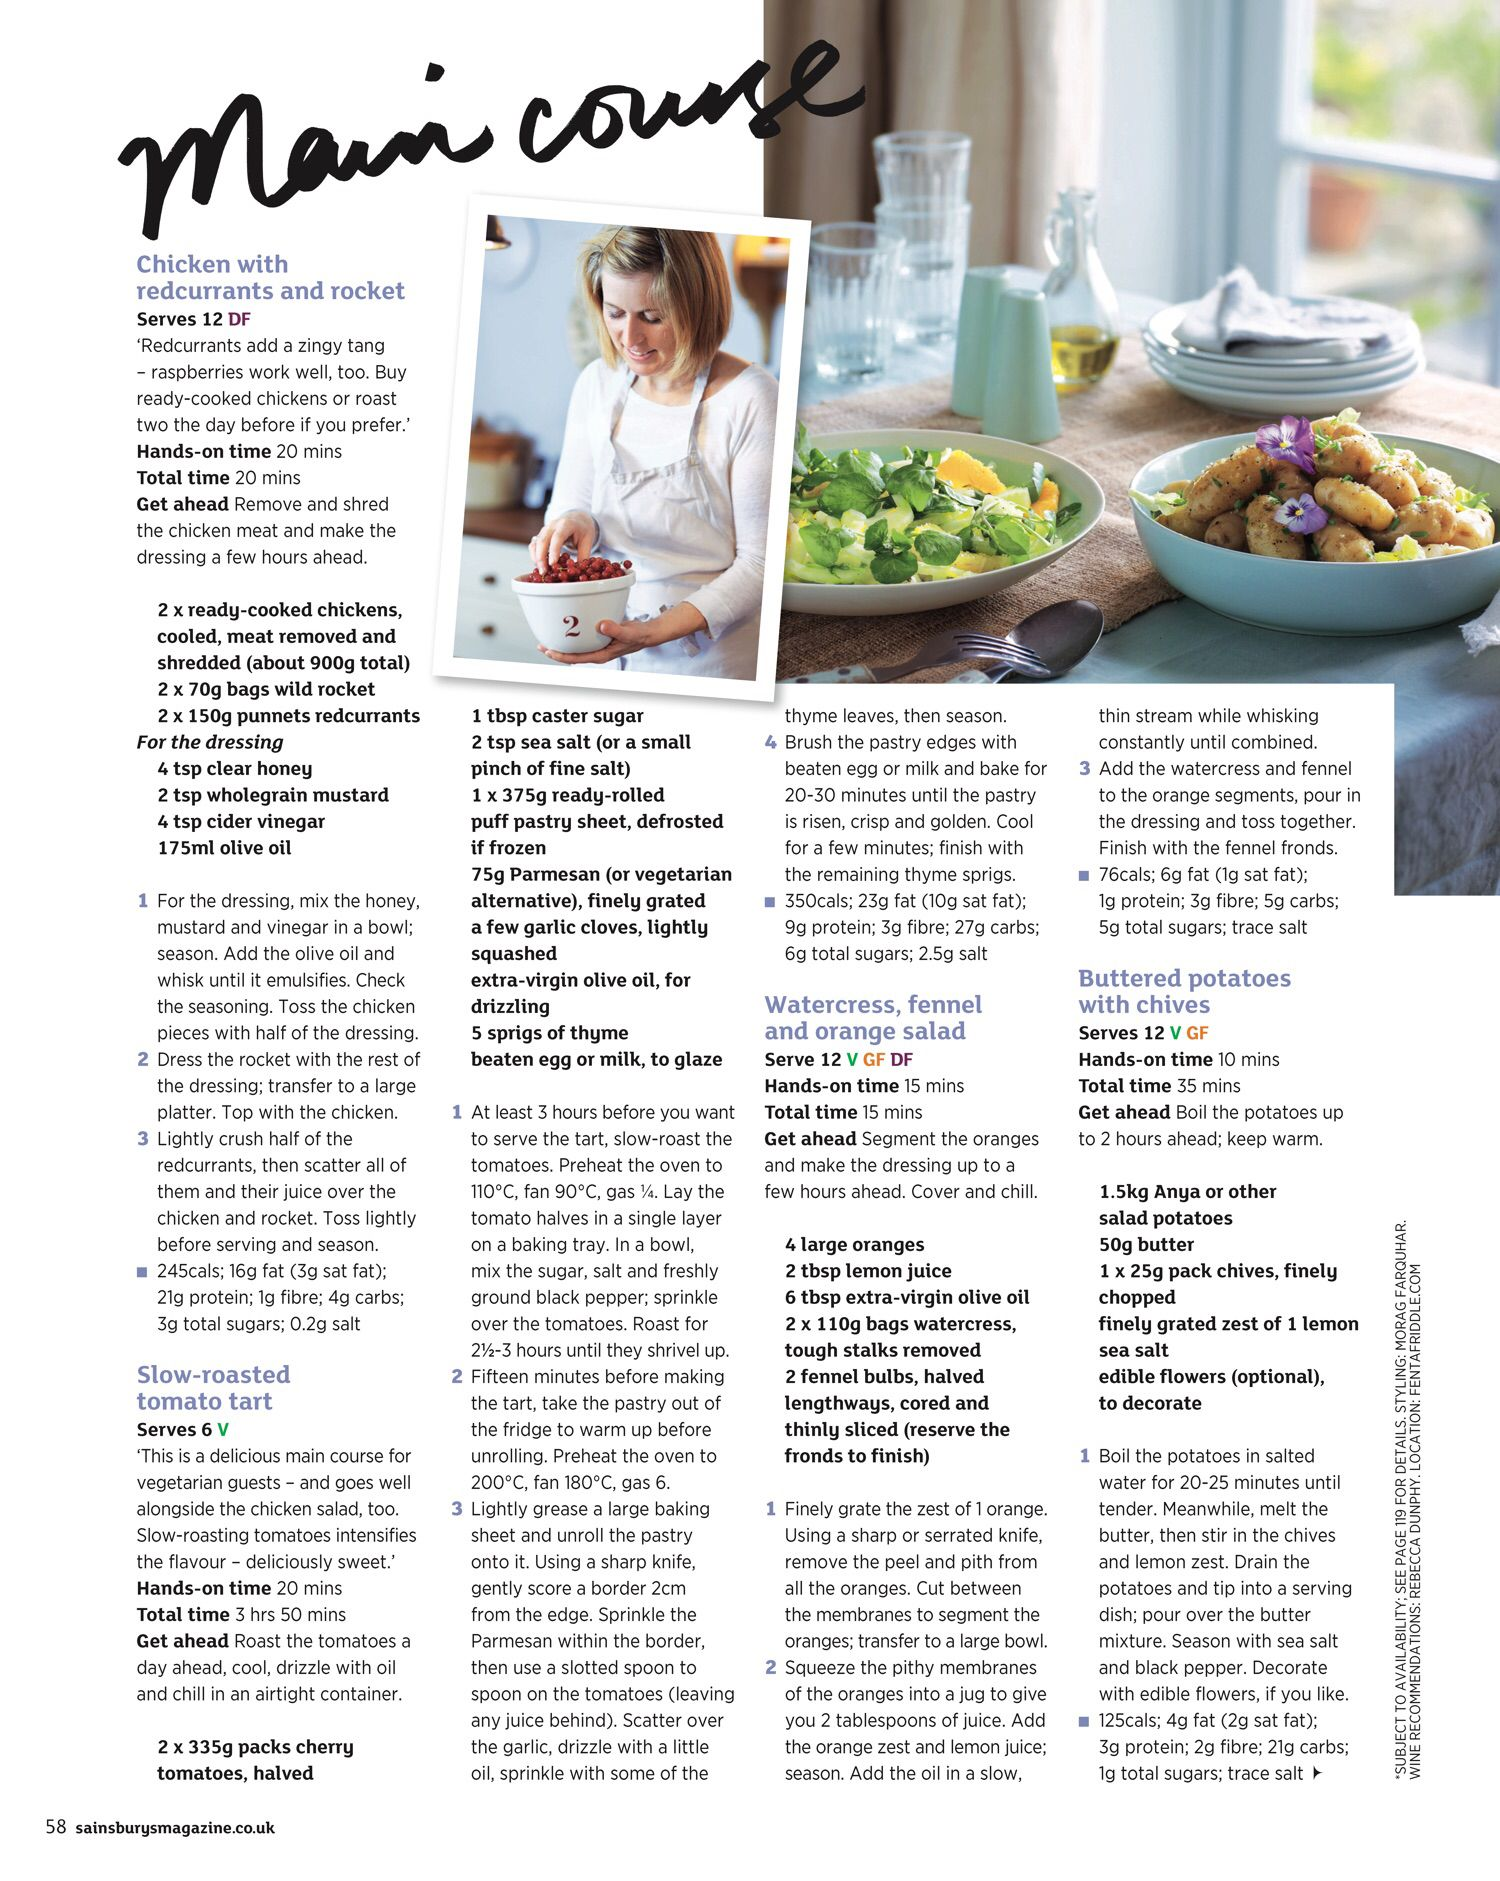 page 58 of sainsbury's magazine  august 2015   how to